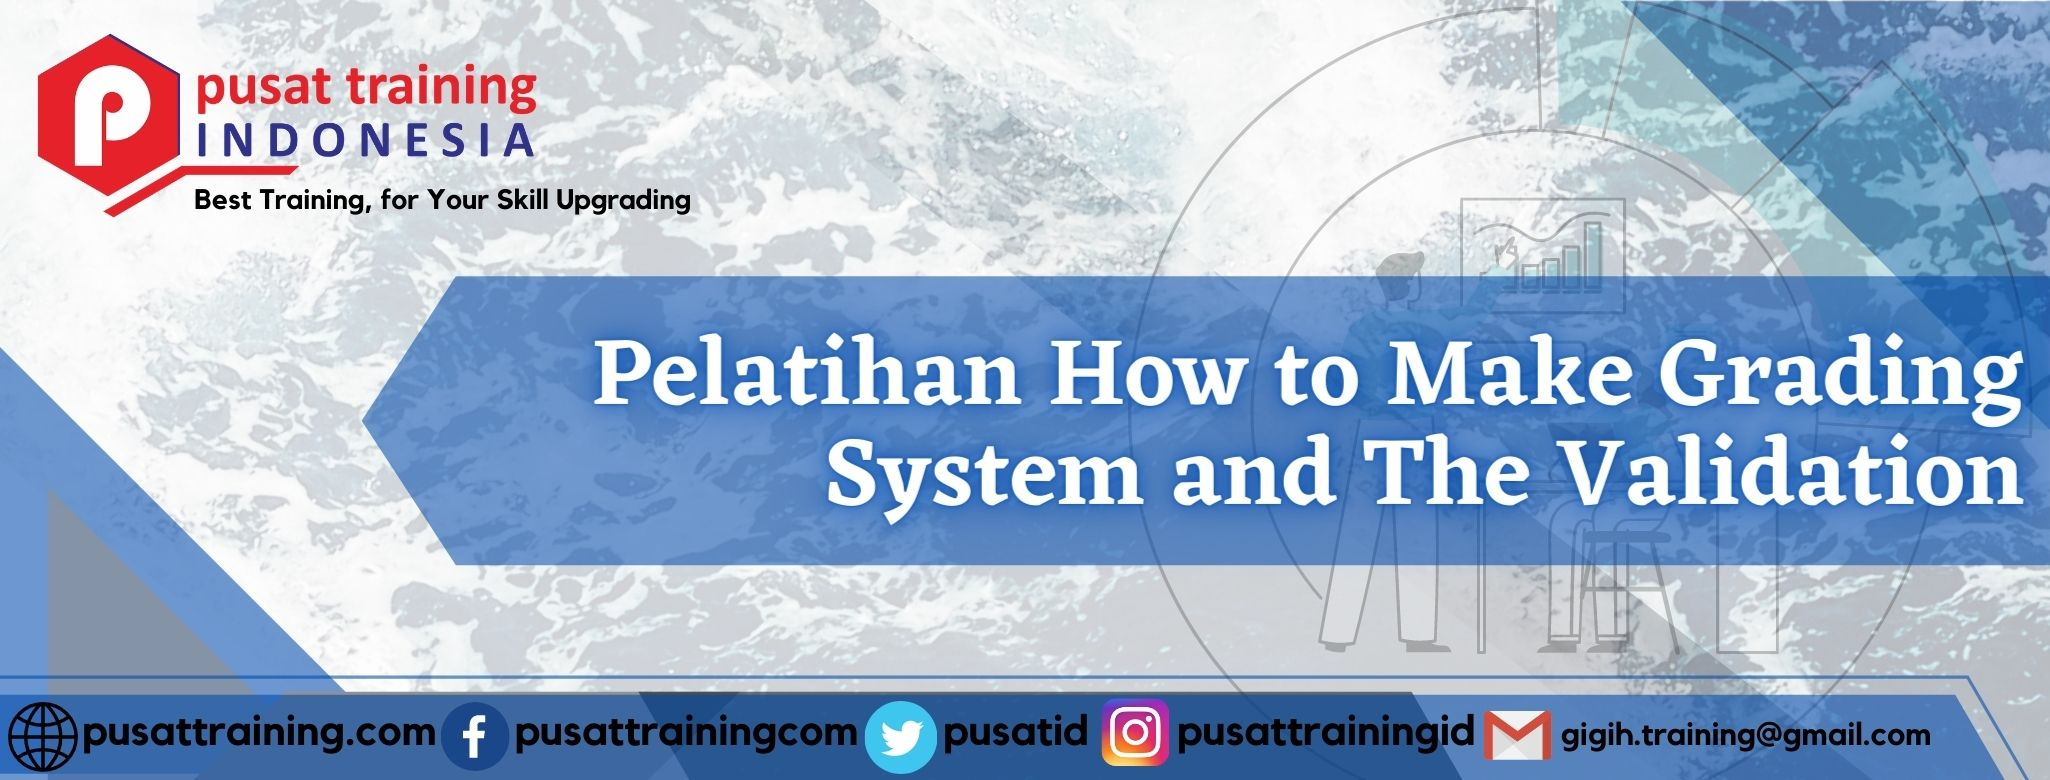 pelatihan-how-to-make-grading-system-and-the-validation